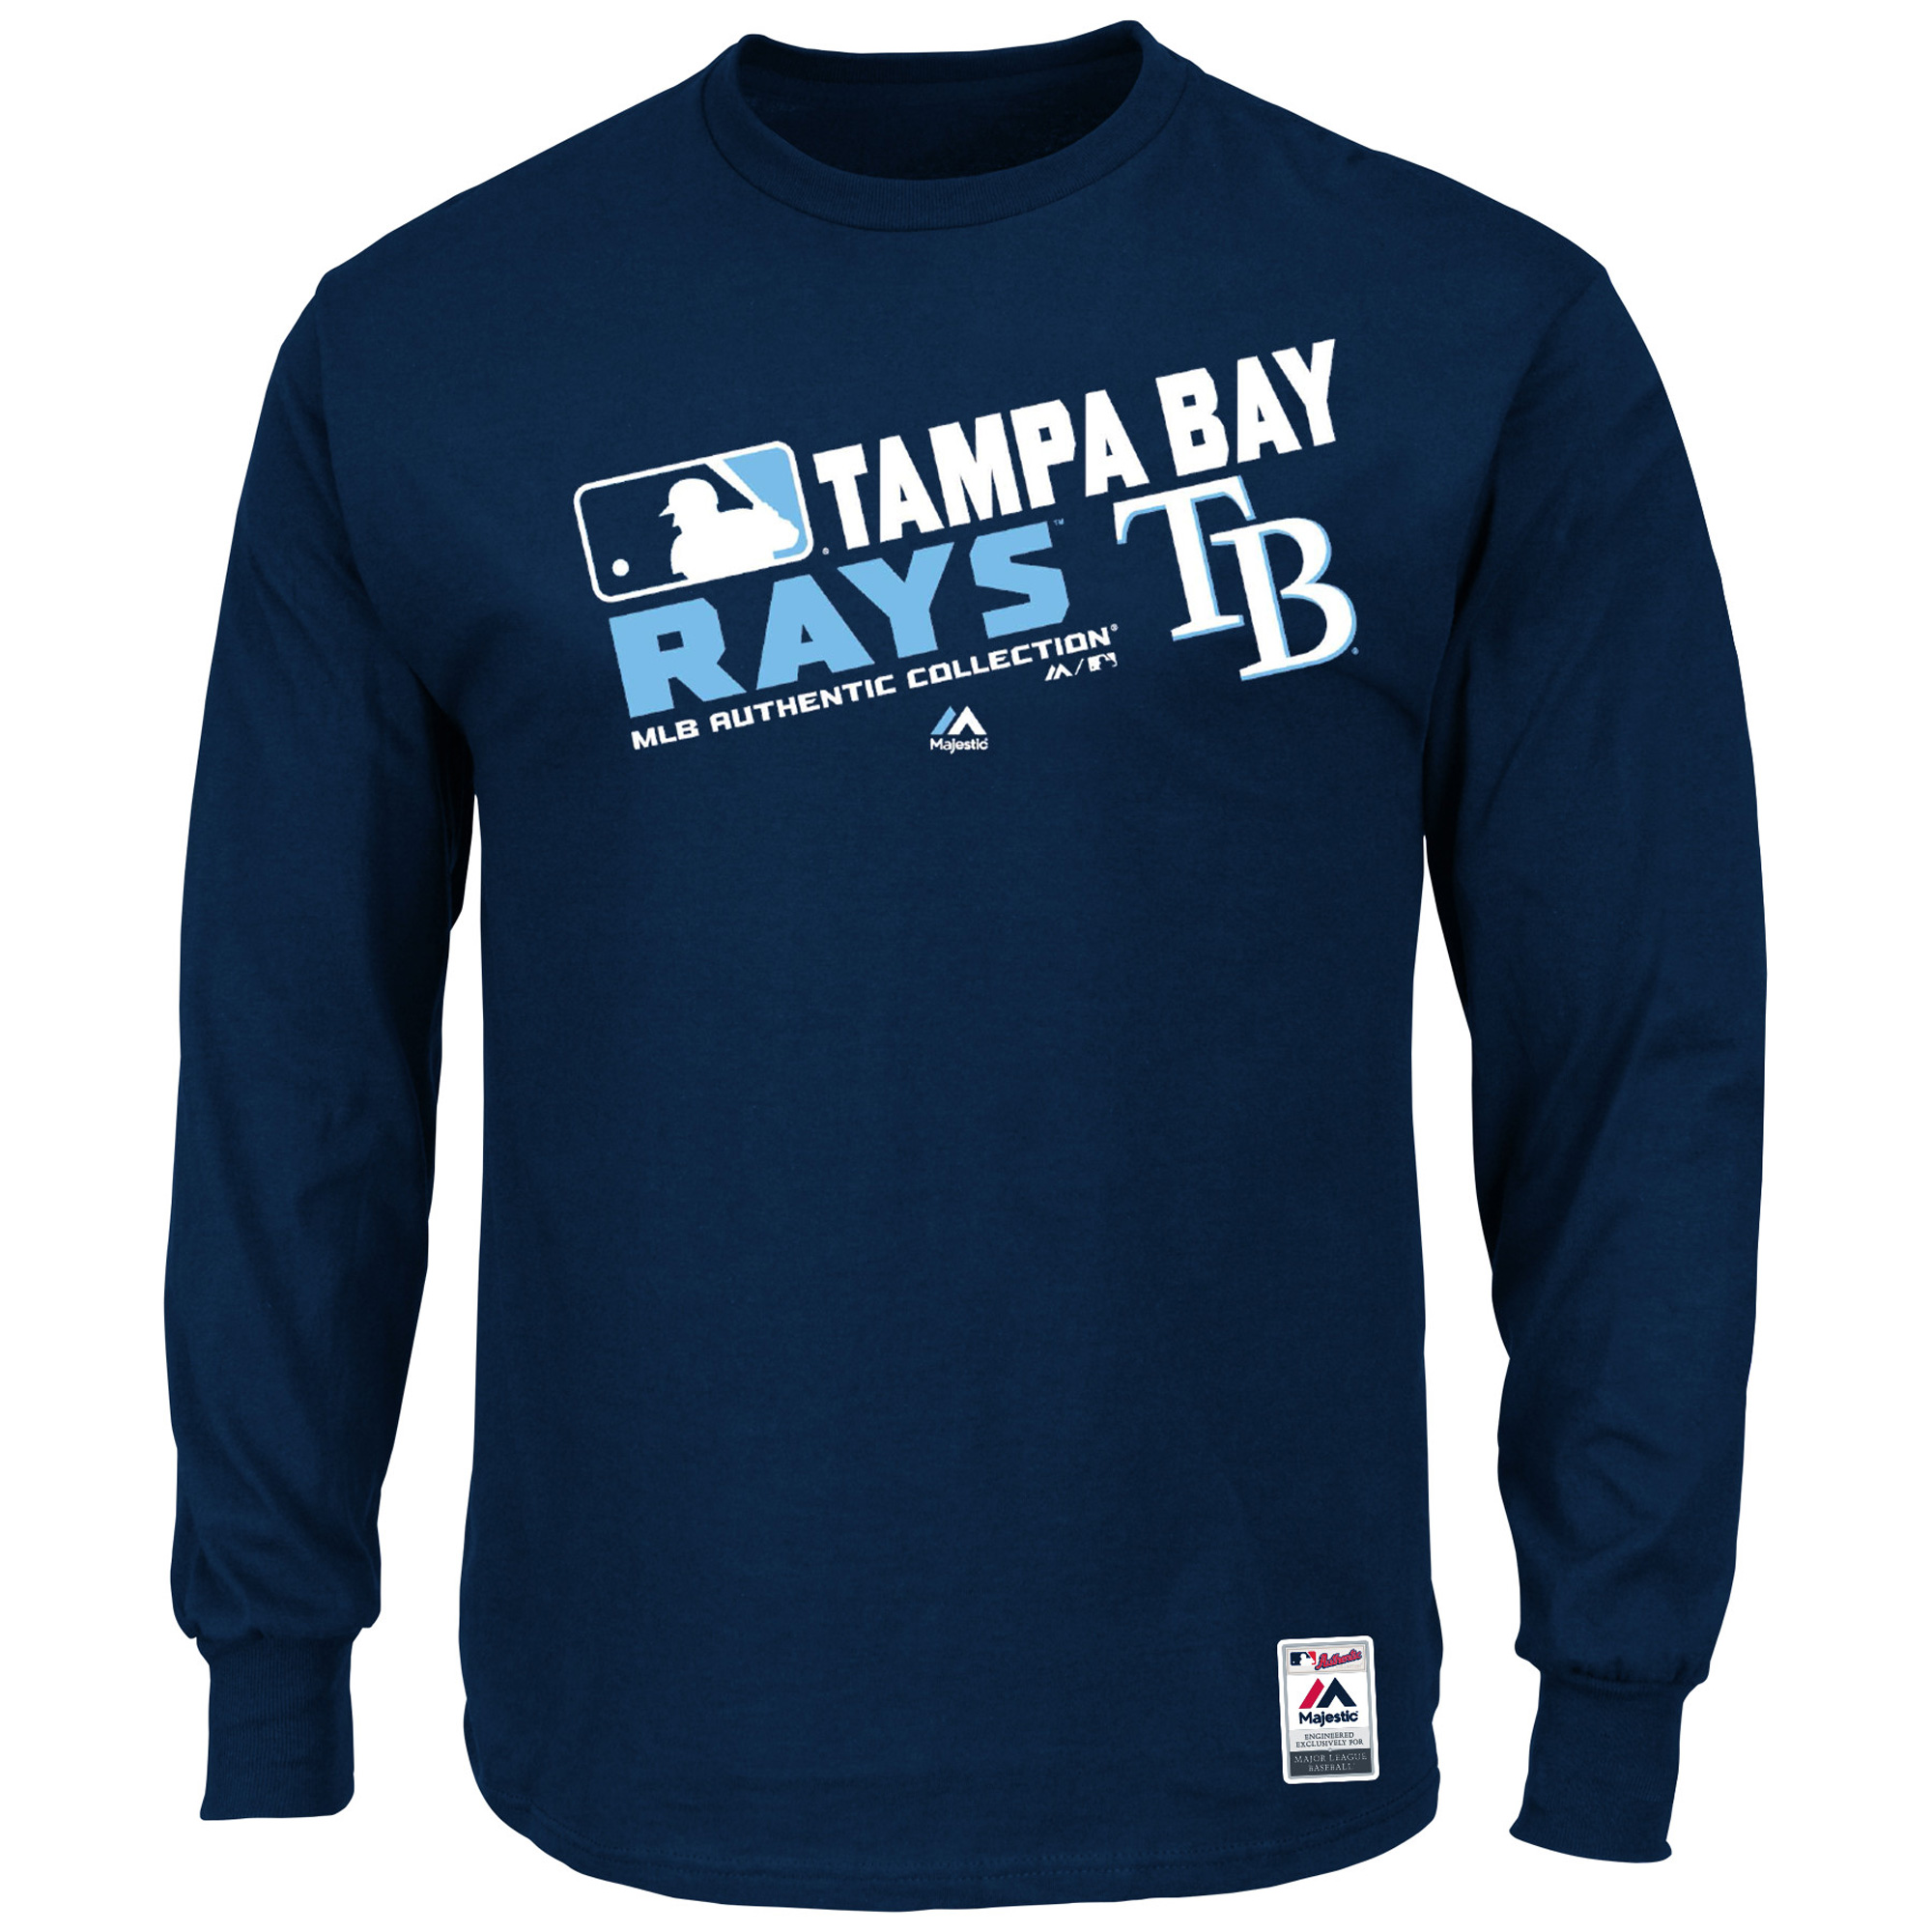 Tampa Bay Rays Majestic Authentic Collection Team Choice Long Sleeve T-Shirt - Navy